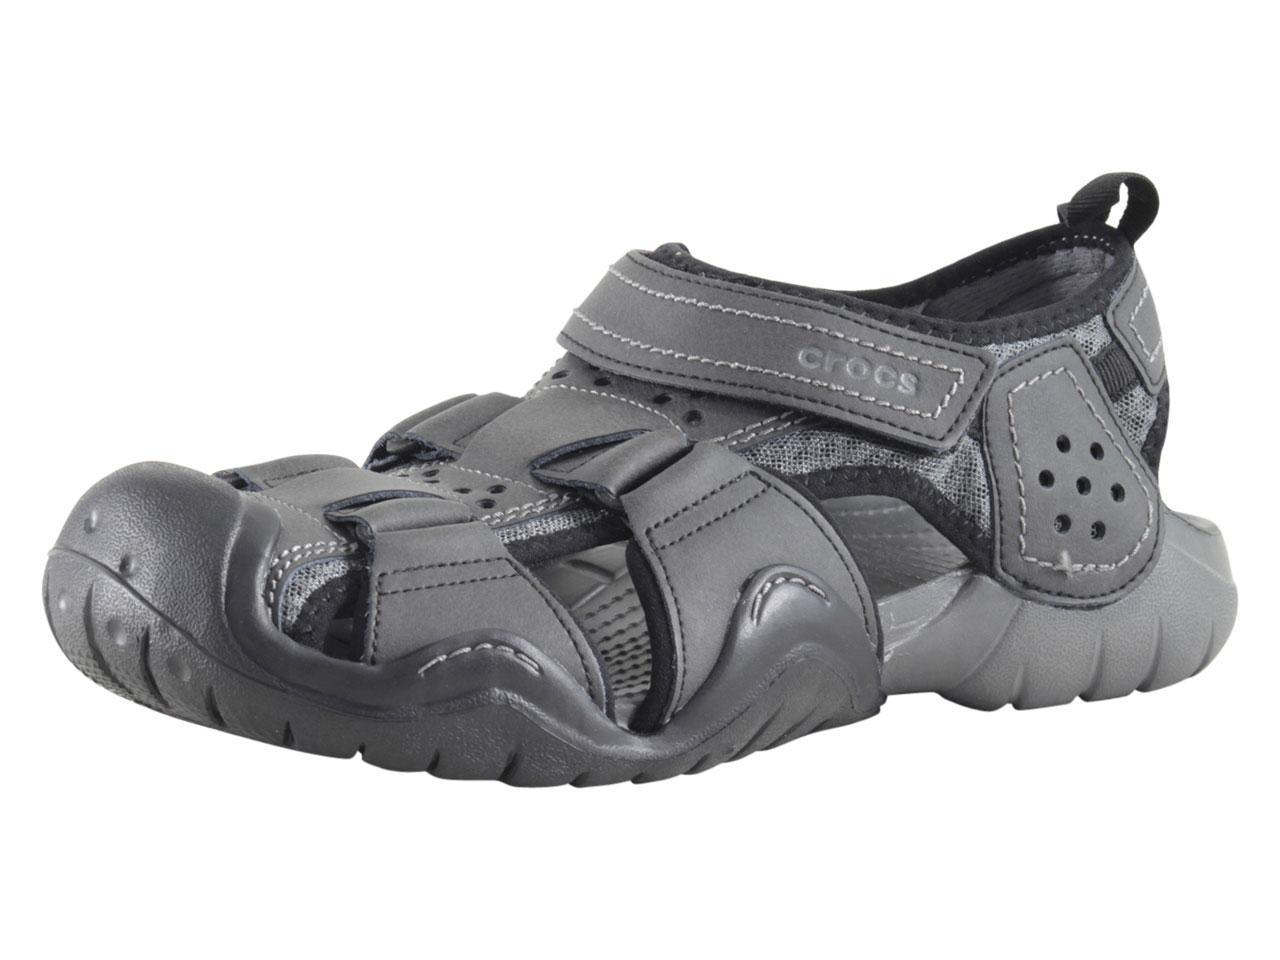 95ed0ae46b71 Crocs Men s Swiftwater Leather Fisherman Sandals Shoes by Crocs